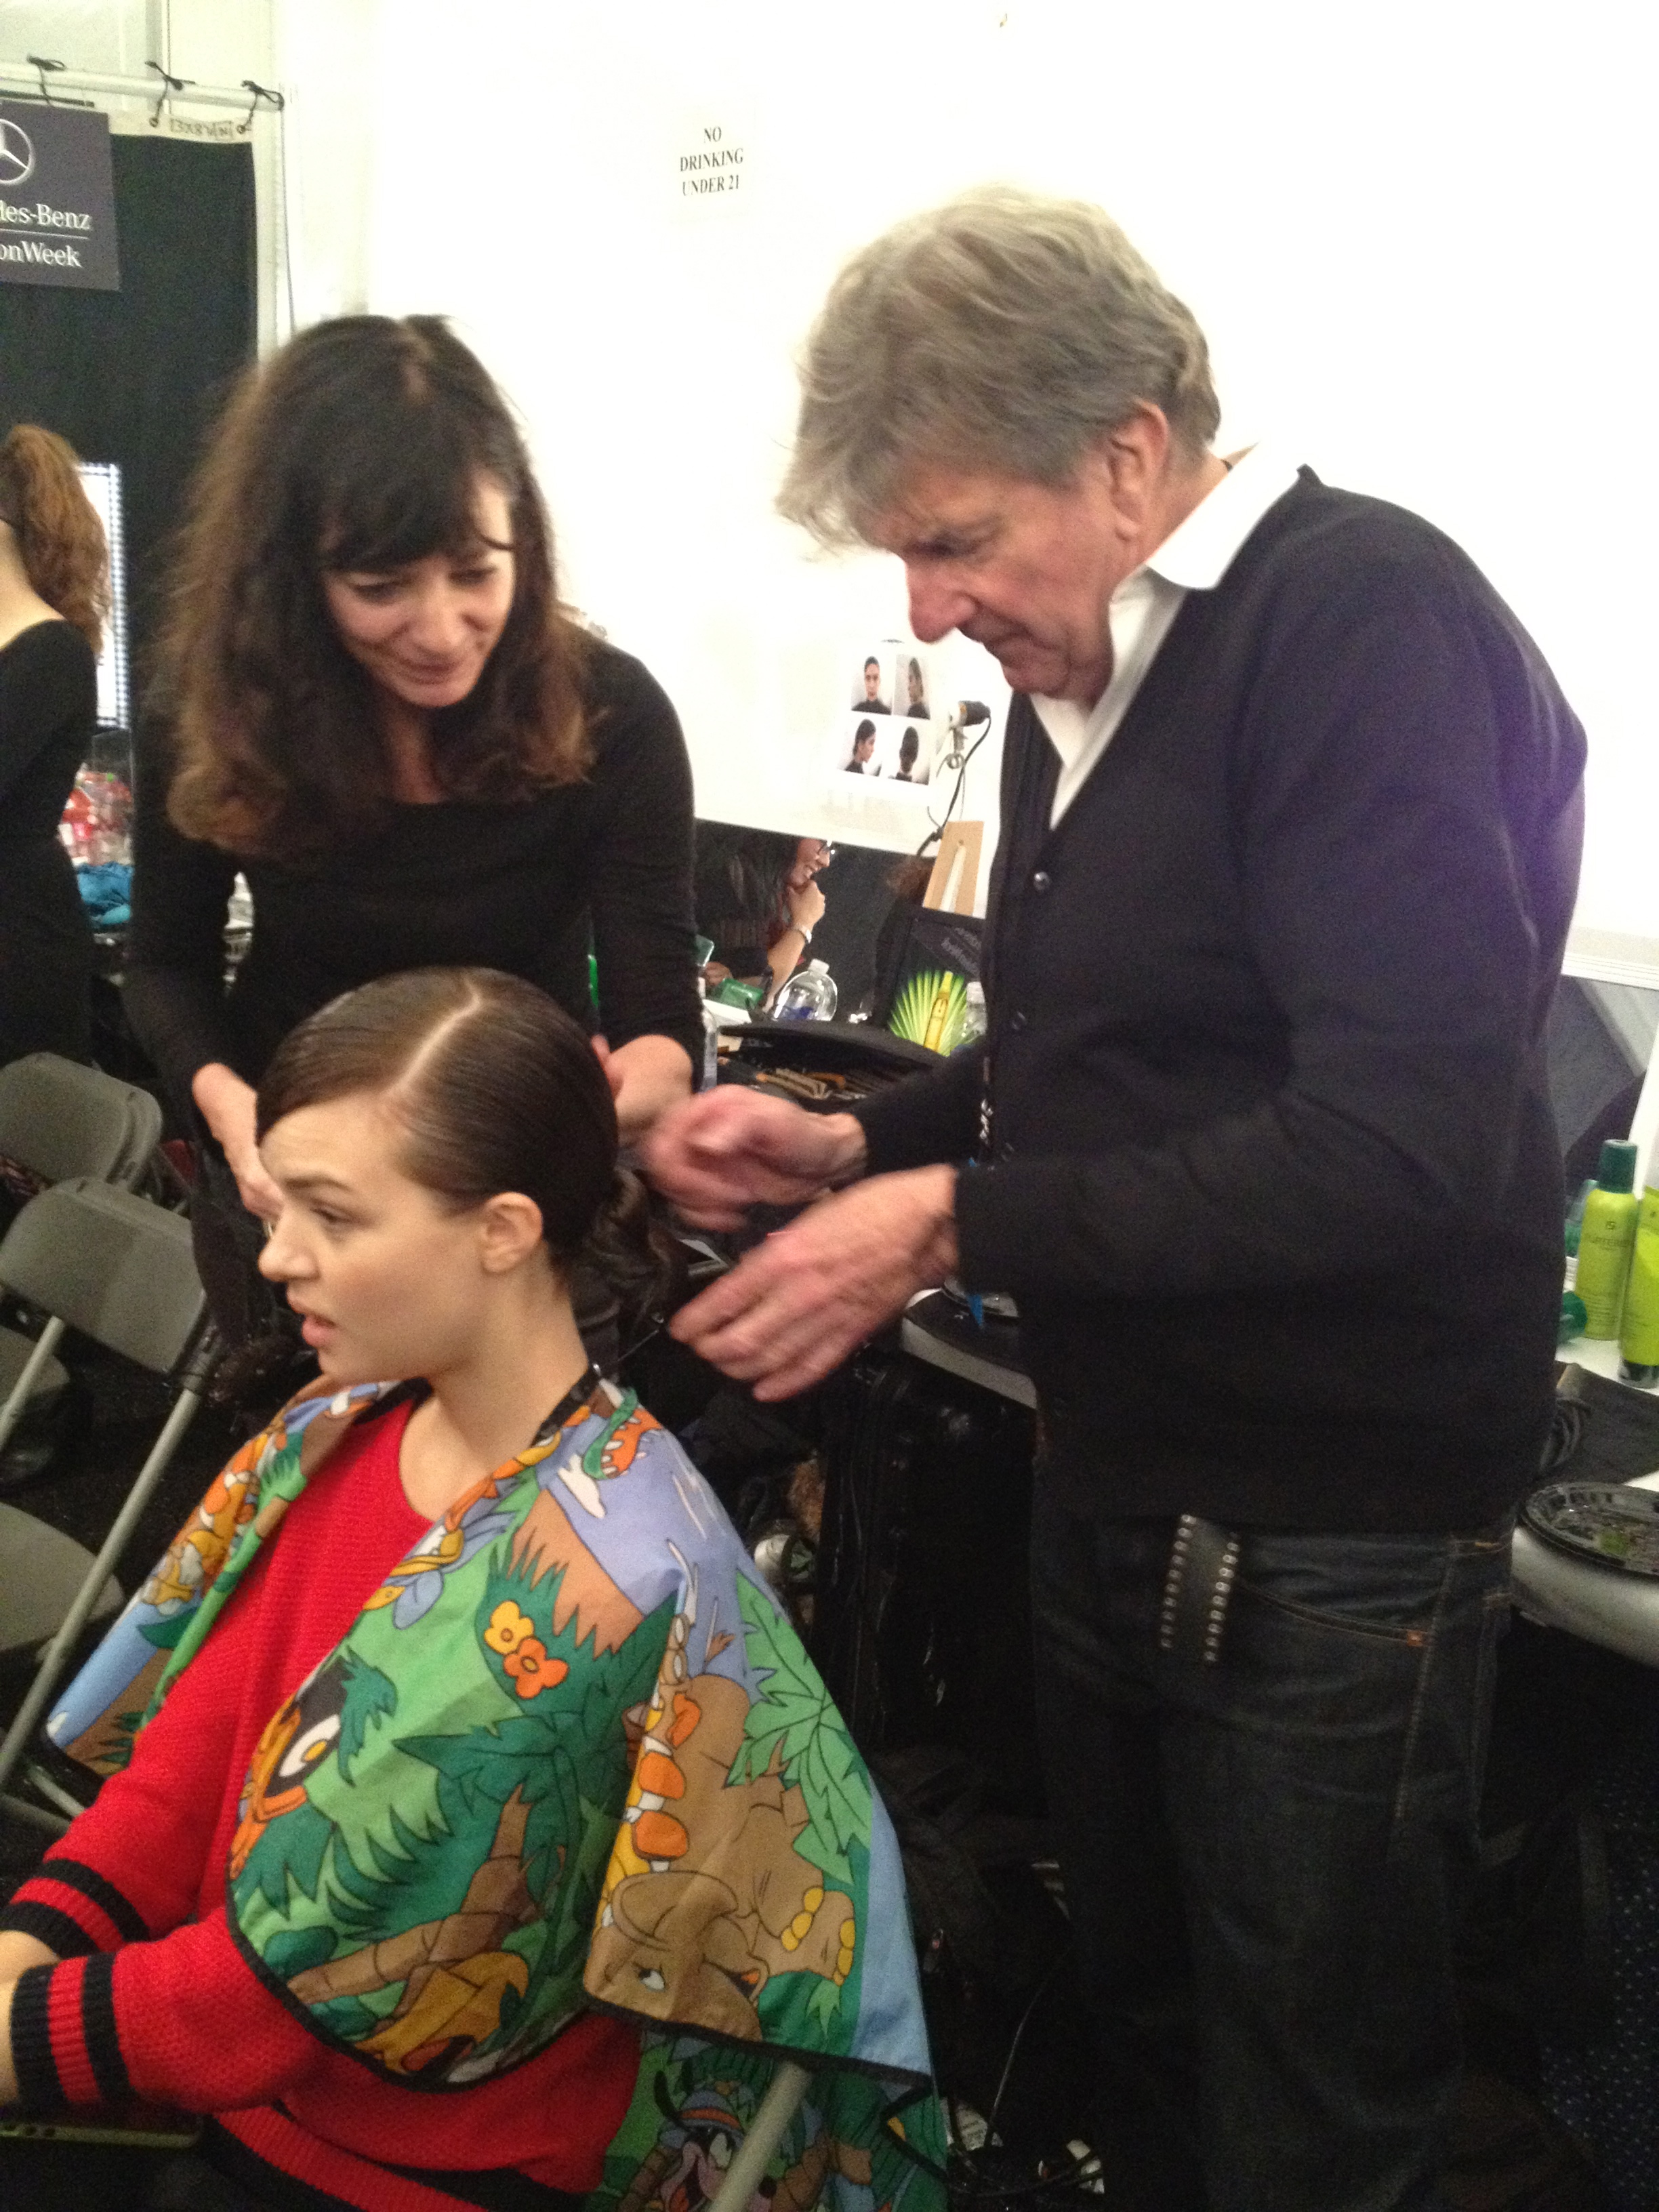 Didier Malige secures chignon backstage.